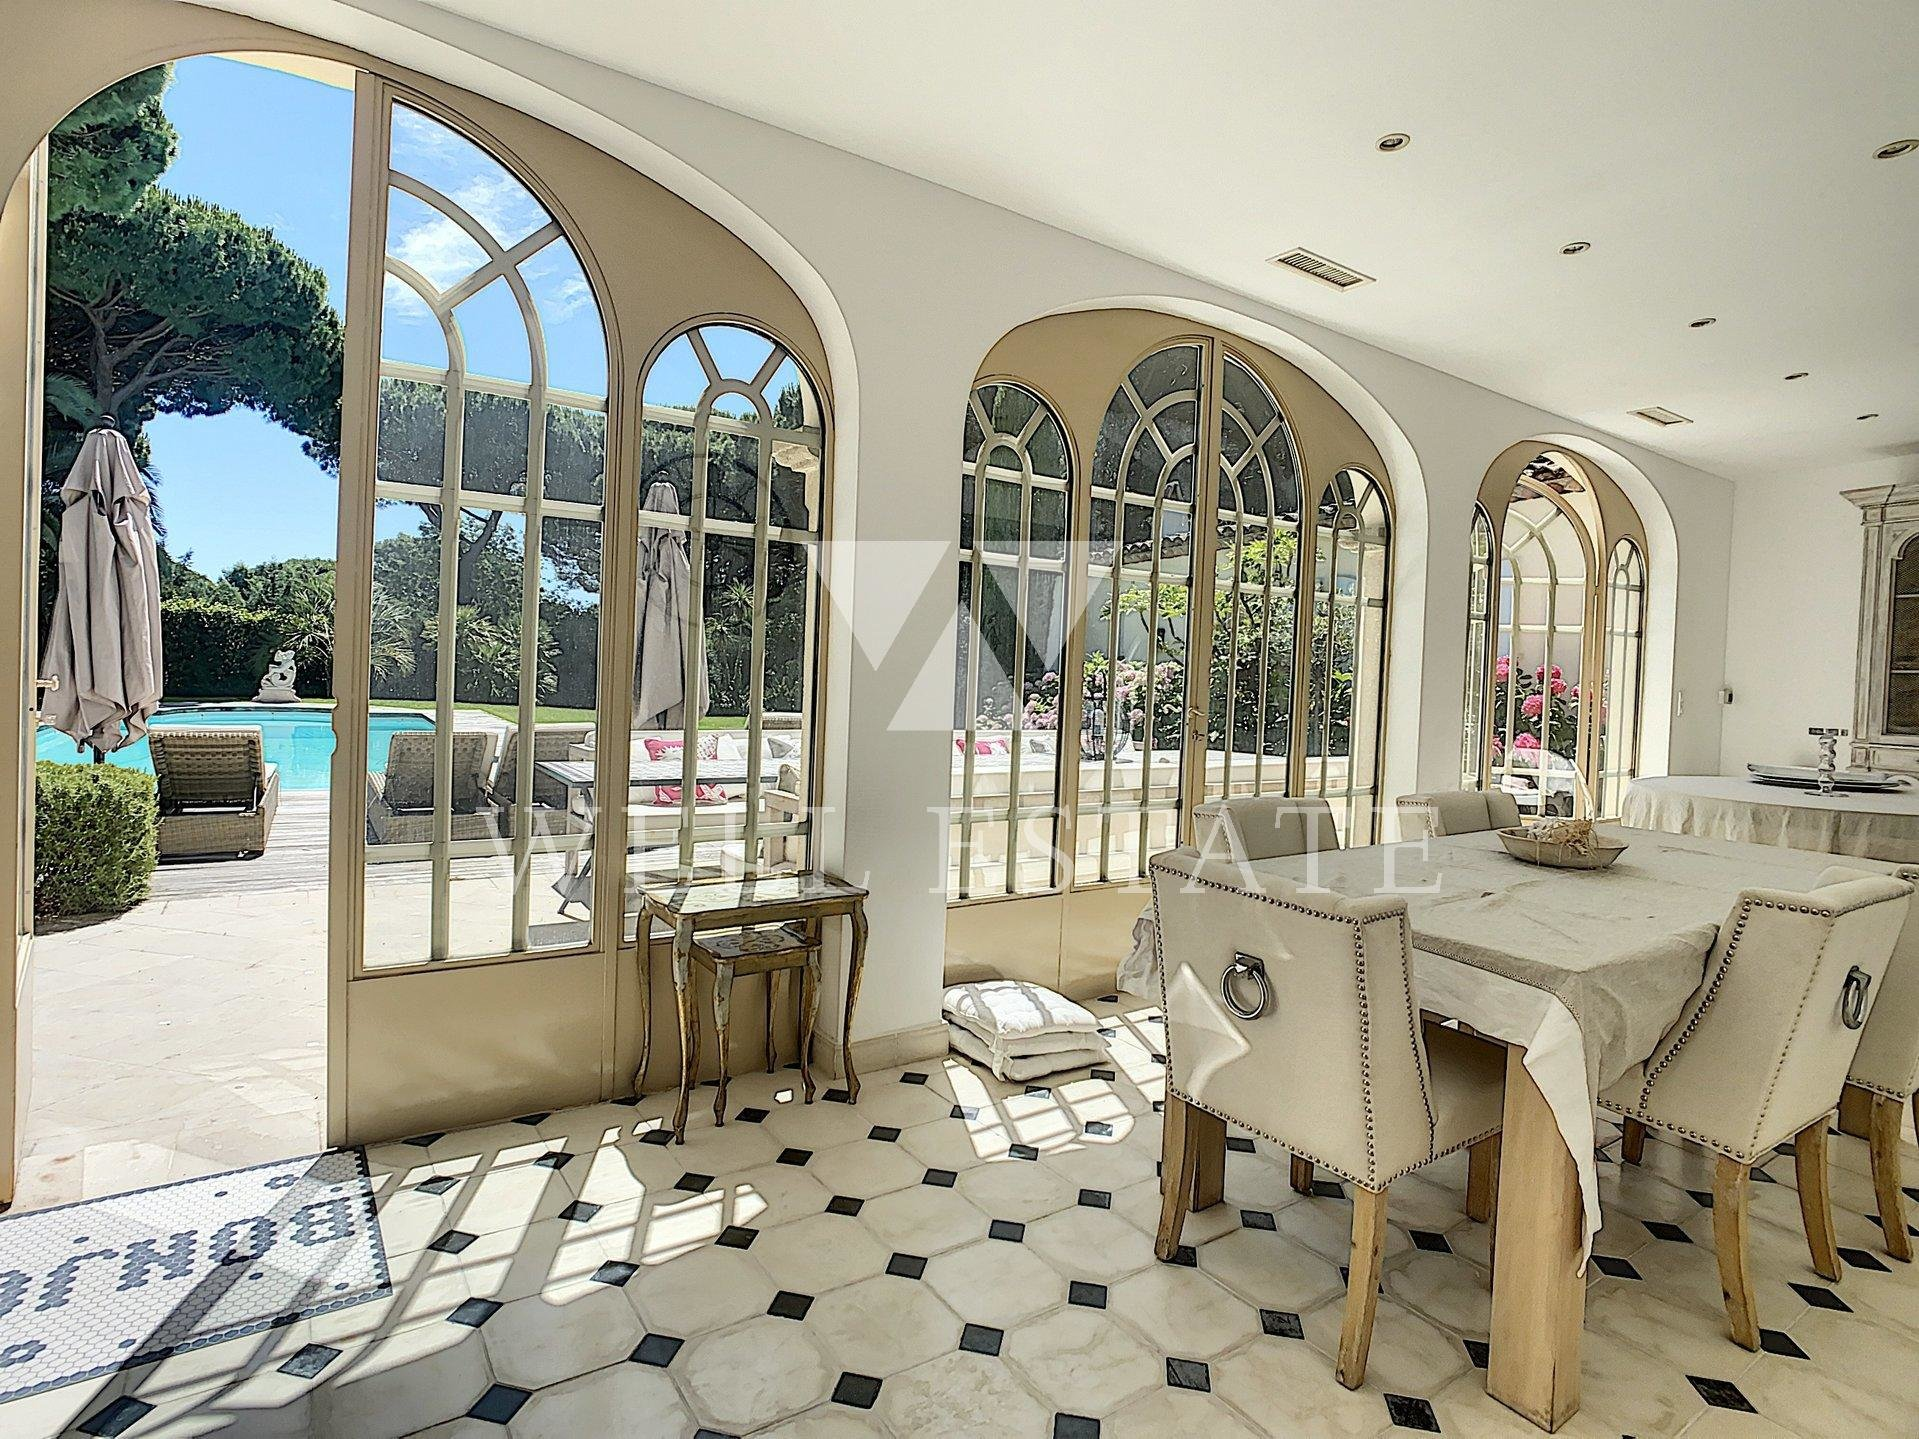 VILLA SAINT TROPEZ SECURED RESIDENTIAL SUBDIVISION 330M2 5 BEDROOMS SWIMMING POOL